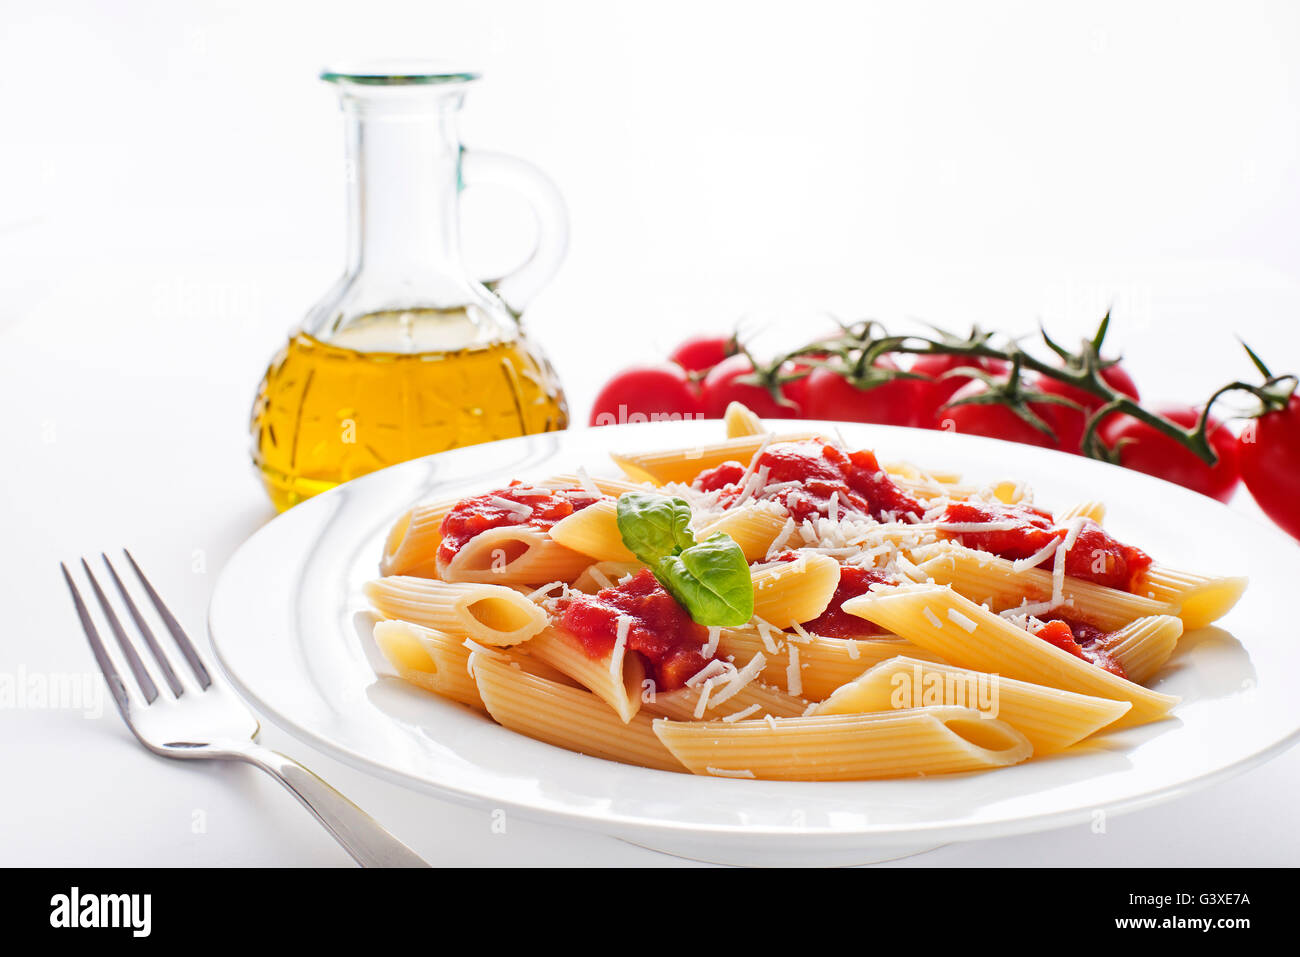 Plate of penne pasta with tomato sauce and parmesan cheese. - Stock Image